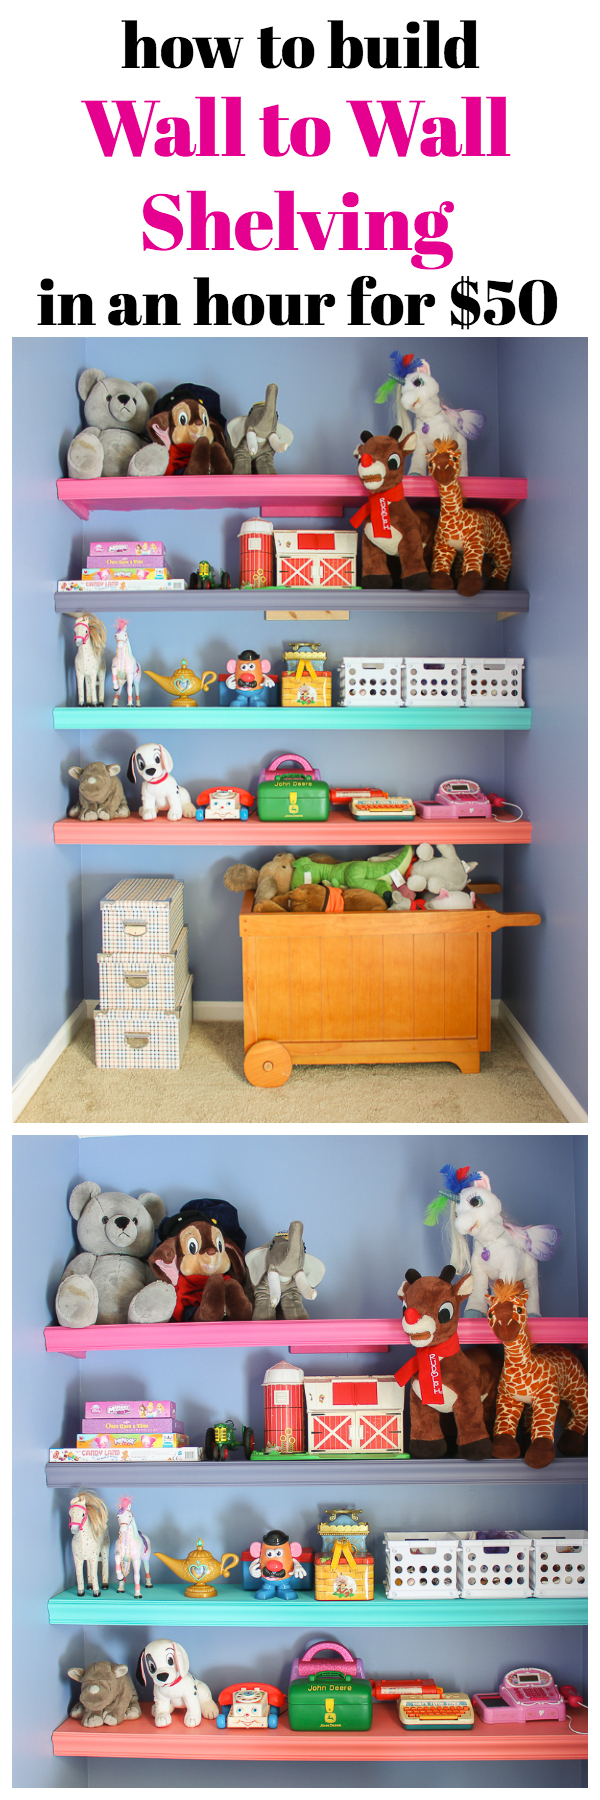 Making Wall Shelves Between Two Walls - Colorful Shelves for the Playroom - Rain on a Tin Roof